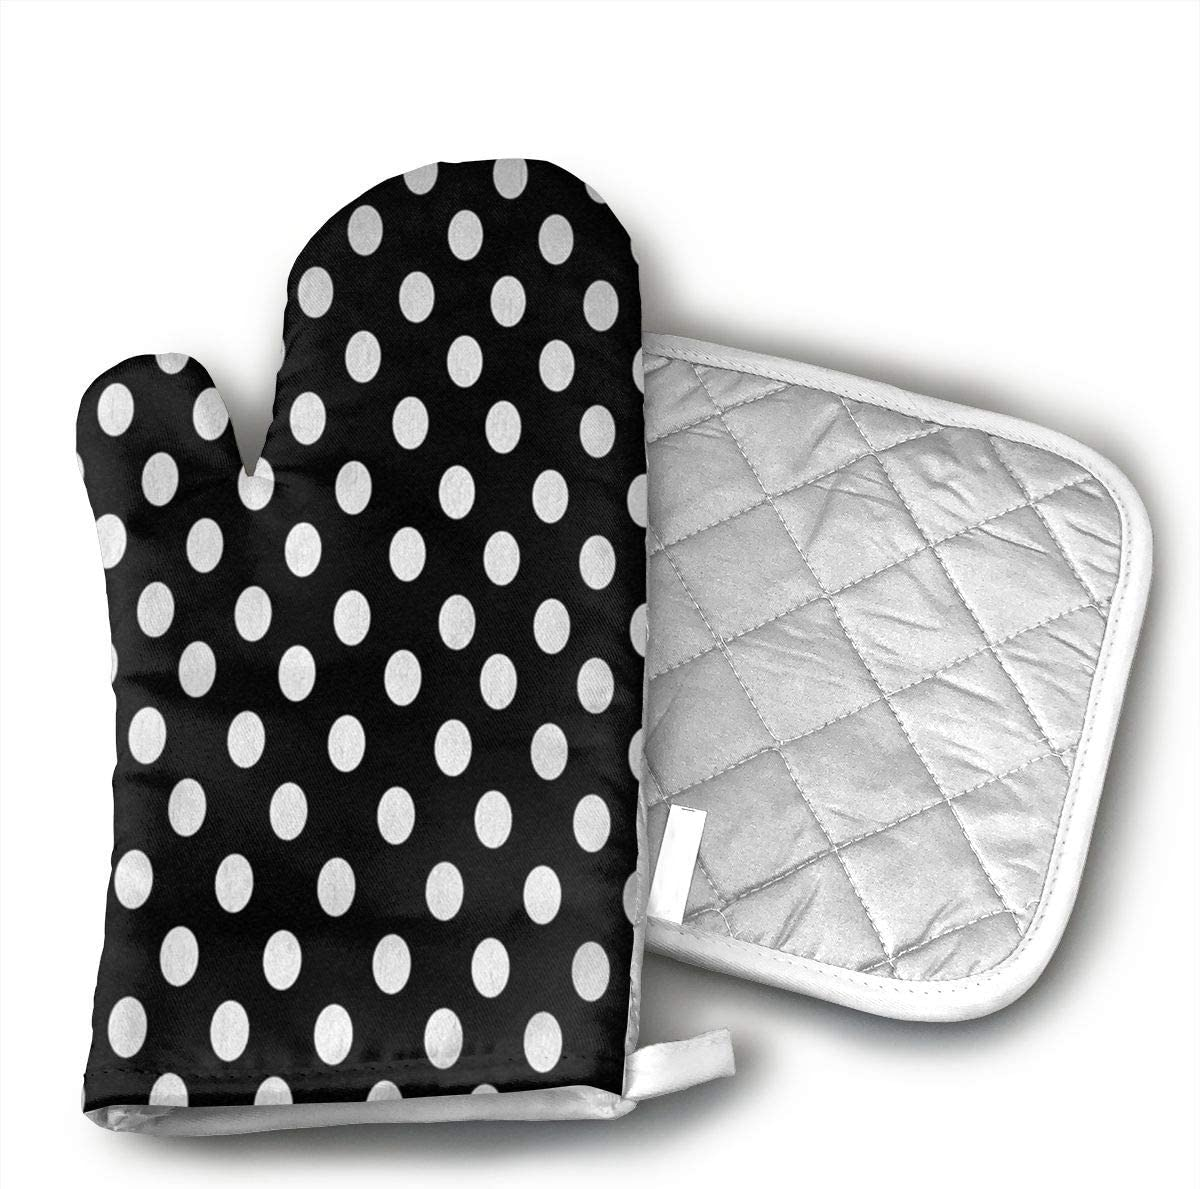 SJFDFjg Polka Dot Designs White Polka Dots On Classy Black Heat Resistant Oven and BBQ Gloves Mitts Cotton Pot Holders Non Slip Oven Gloves for Kitchen,Grilling Machine,Cooking Baking Grilling.